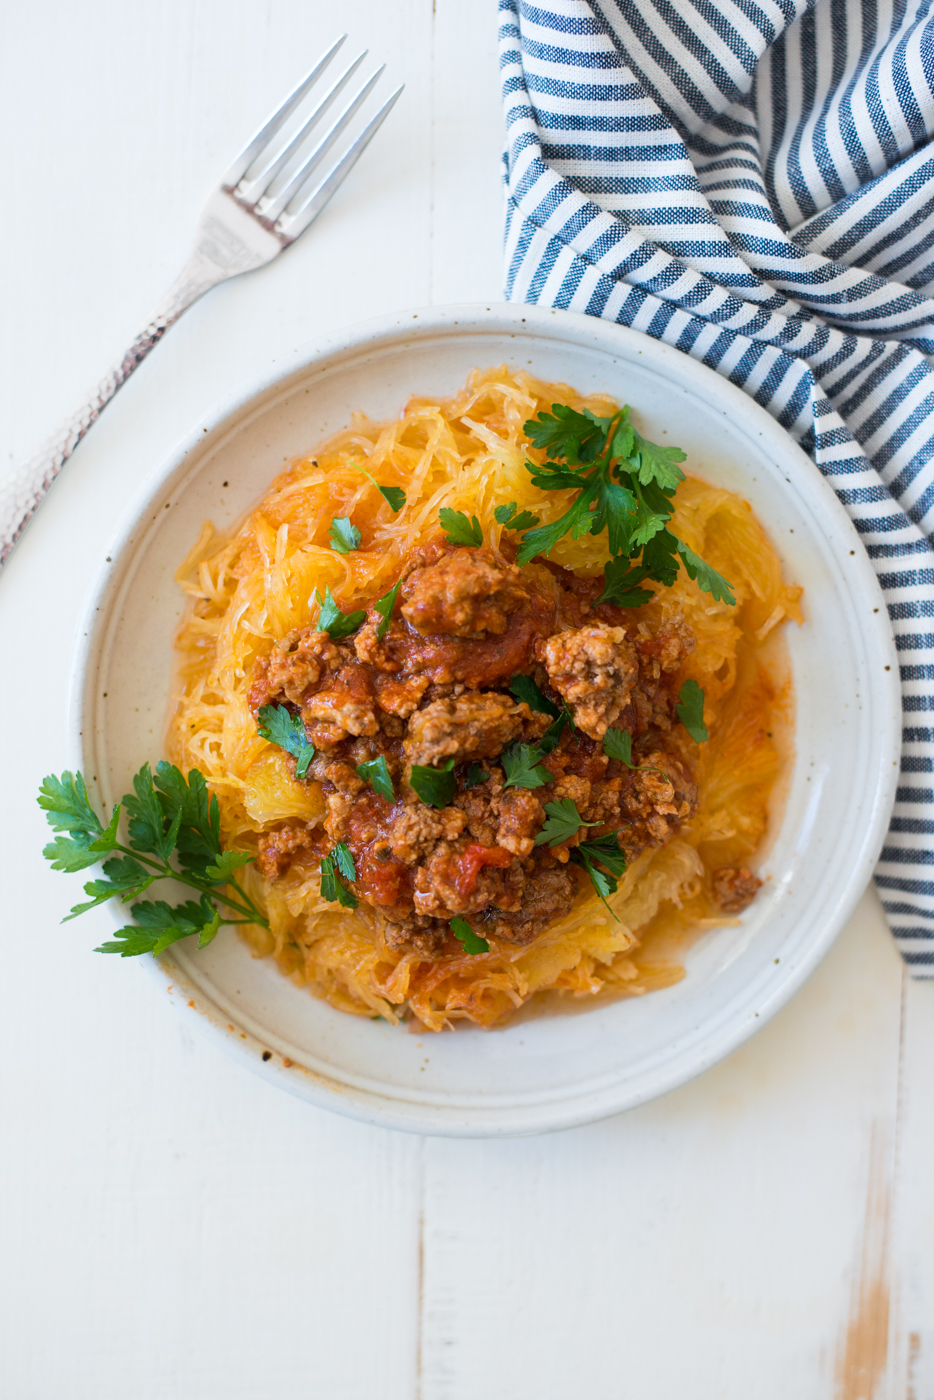 Instant Pot Spaghetti Squash & Short-Cut Bolognese is a one-pot wonder, since the meat sauce and spaghetti squash cook together for a simple, delicious meal with minimal clean up. A gluten-free, dairy-free, paleo, whole30 recipe the whole family will love. #realfoodwholelife #realfoodwholeliferecipe #instantpot #instantpotrecipe #paleo #paleorecipe #whole30 #whole30recipe #whole30instantpot #glutenfree #glutenfreerecipe #dairyfreerecipe #dairyfree #healthy #lowcarb #cleaneating